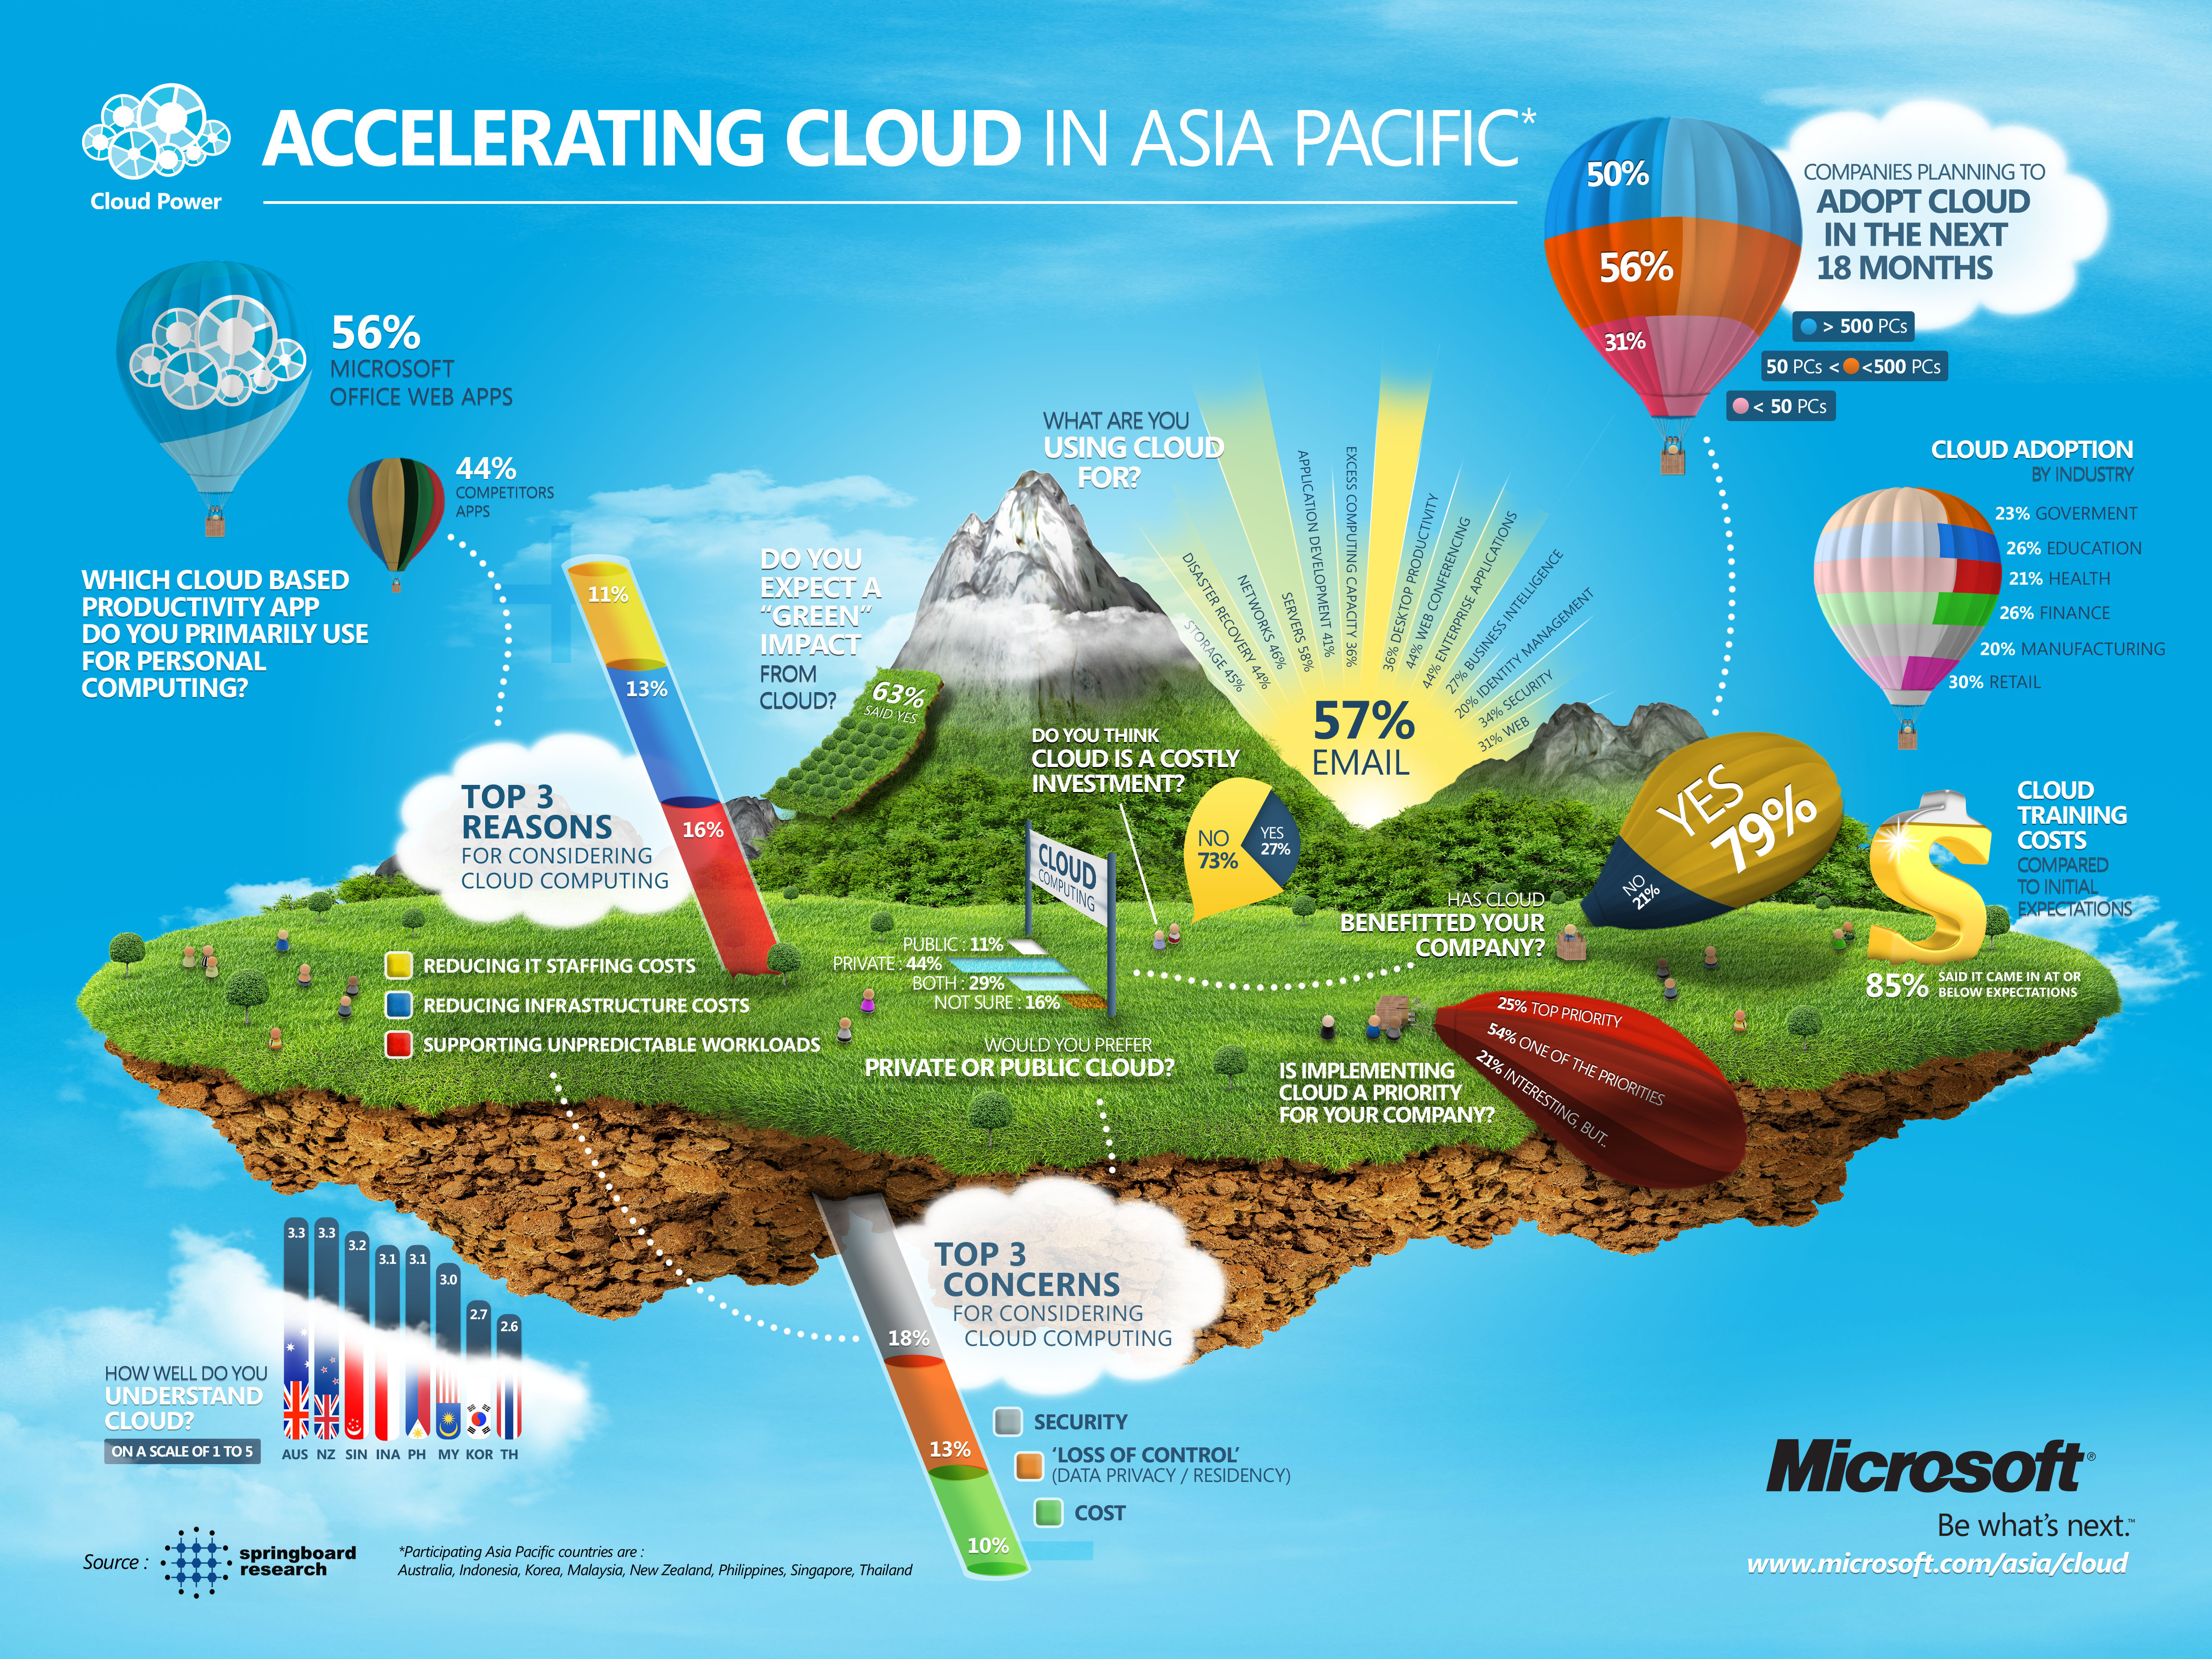 cloud computing by microsoft See how microsoft delivers enterprise cloud solutions that embody digital business transformation find industry and government-specific business solutions.